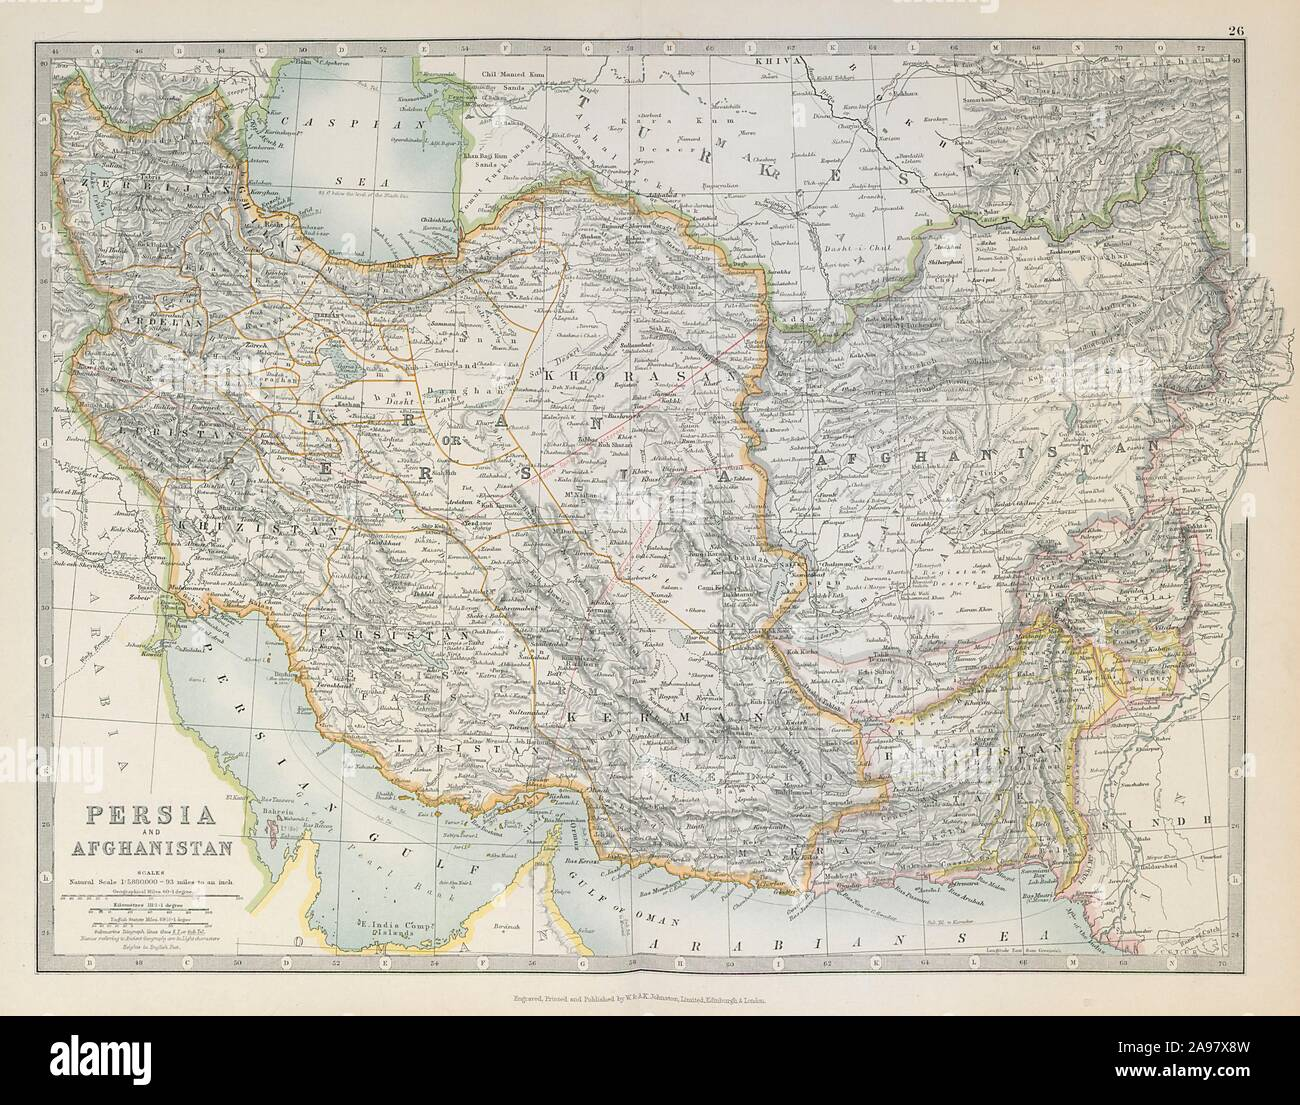 PERSIA & AFGHANISTAN. South West Asia. Iran Baluchistan ...